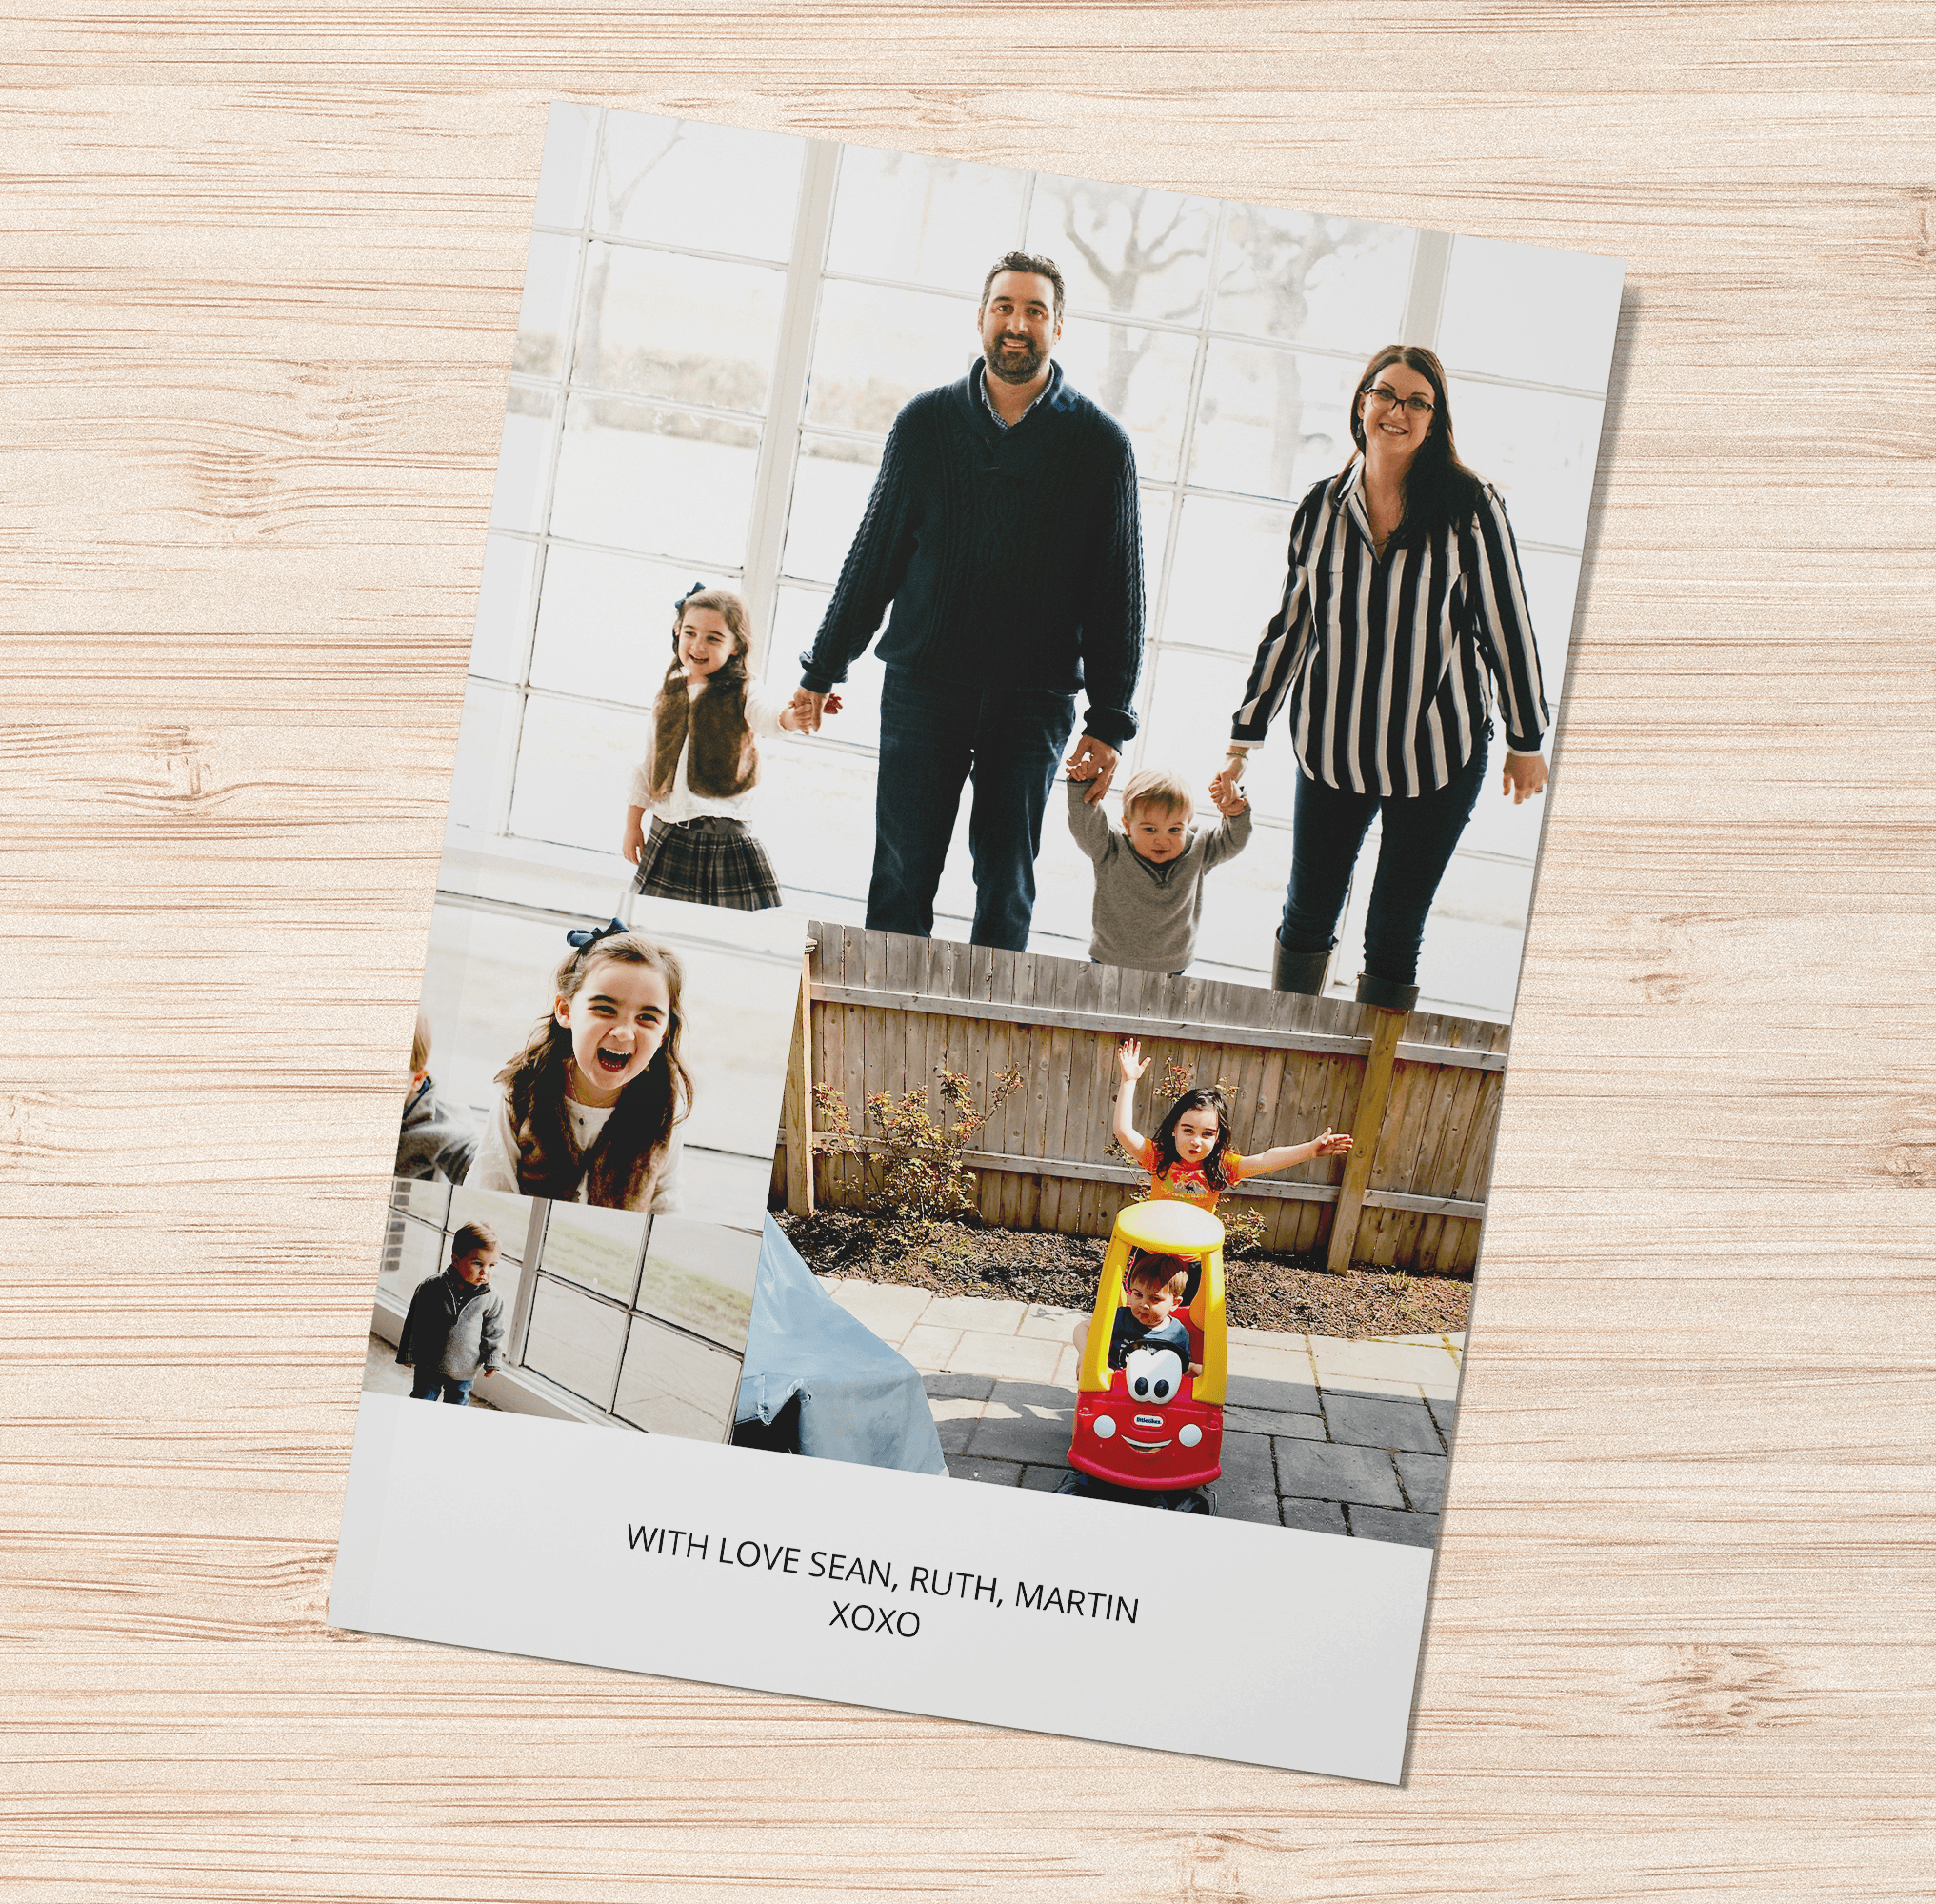 Sean D. creates a family photo card in a folded format